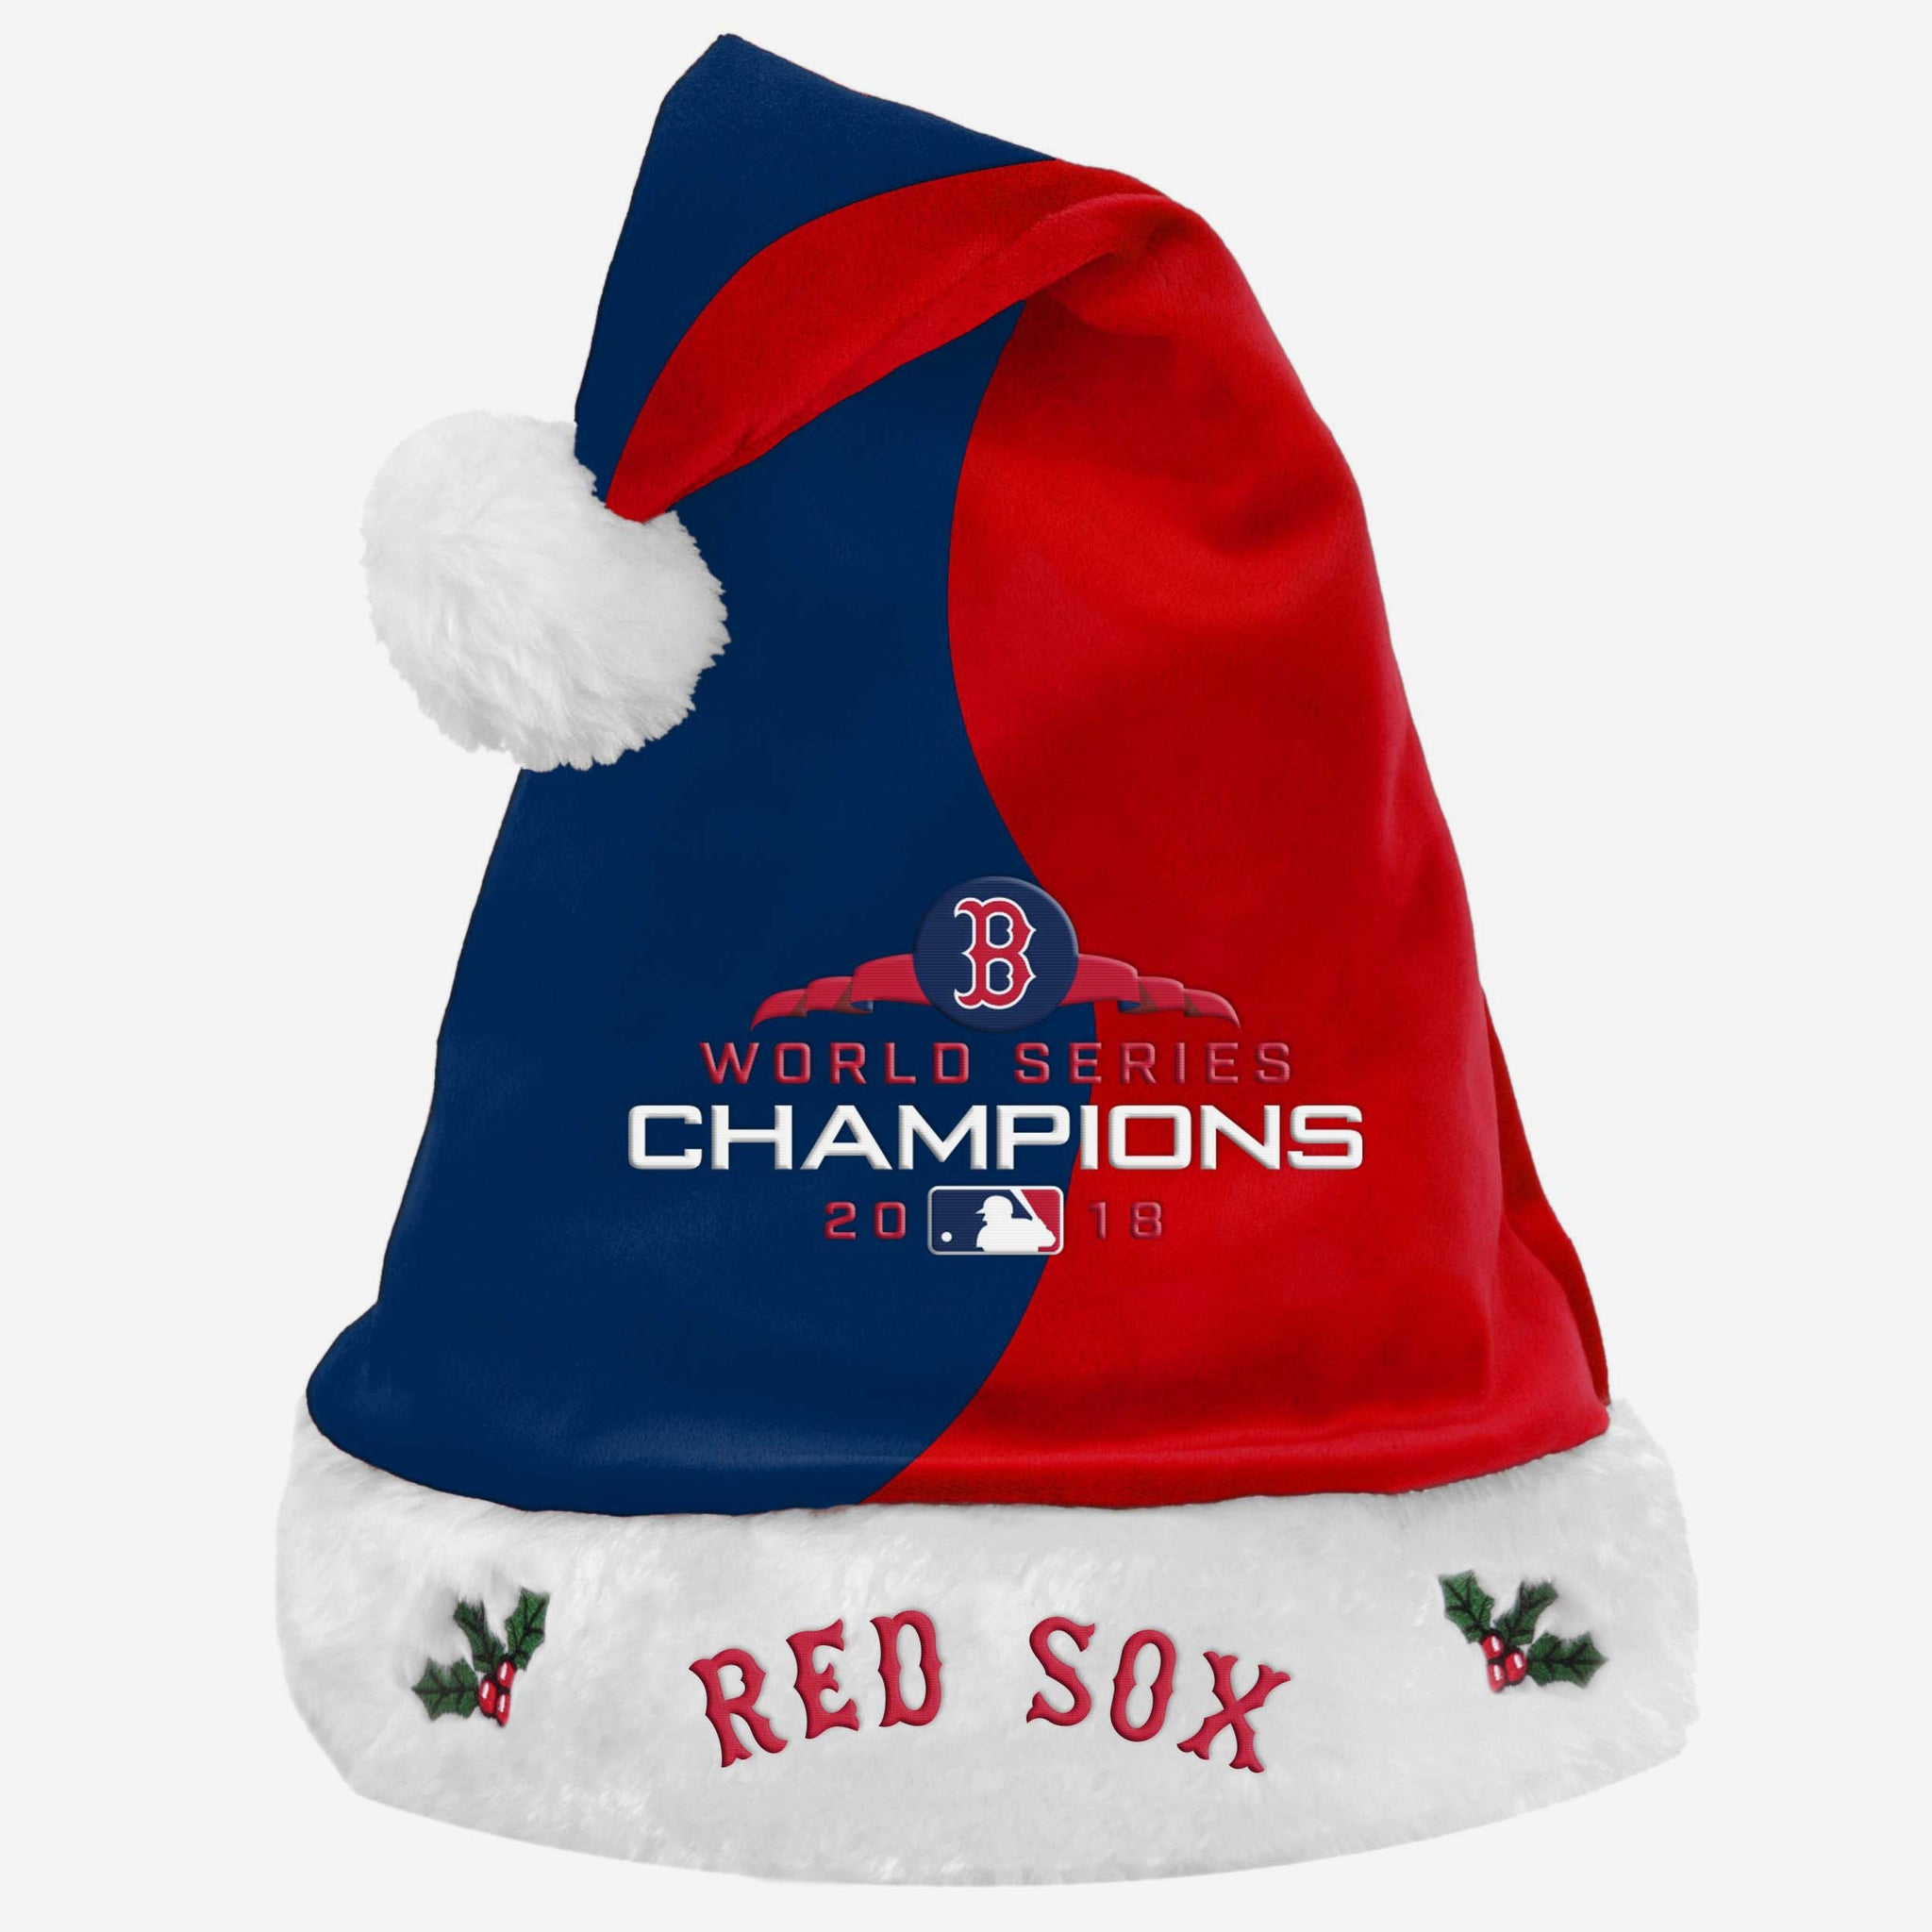 finest selection d3d58 871a3 Boston Red Sox 2018 World Series Champions Santa Hat FOCO - FOCO.com